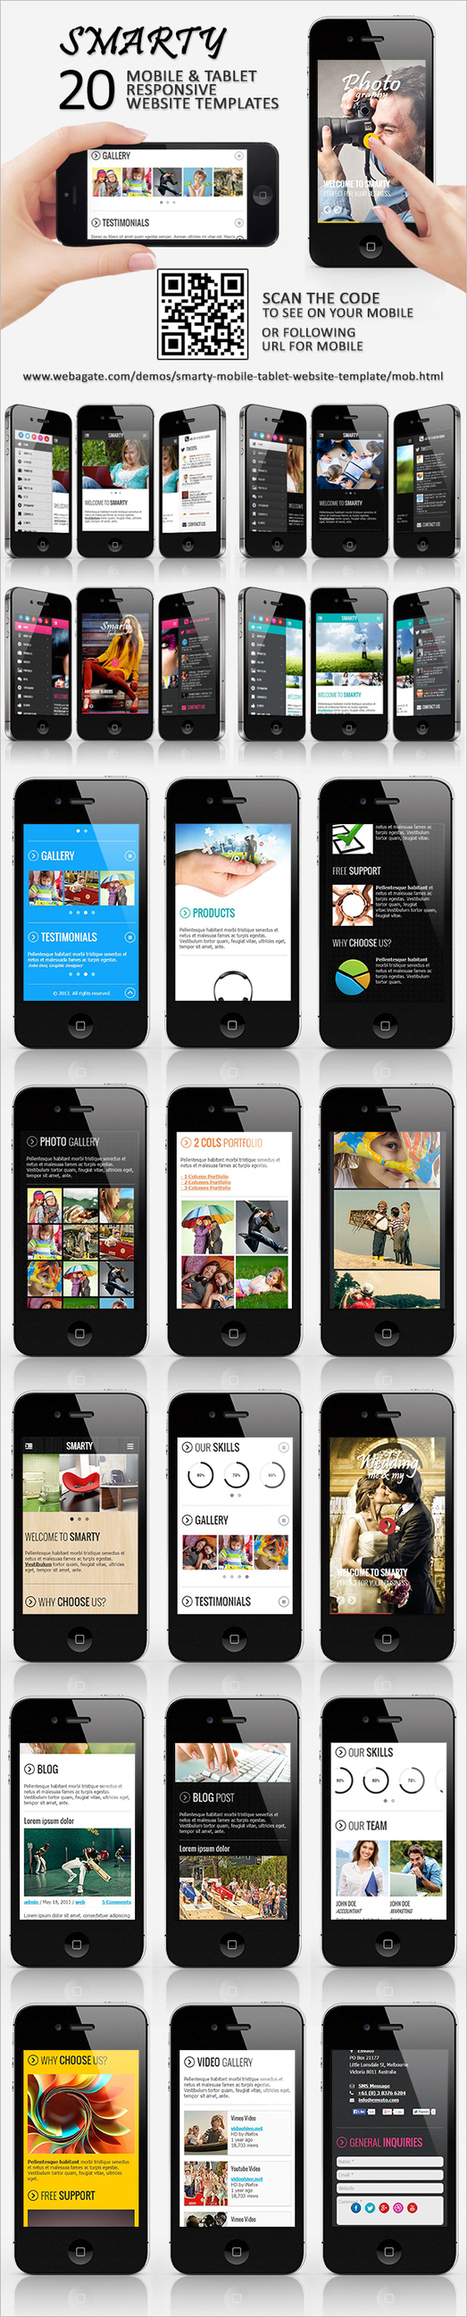 Smarty   Mobile & Tablet Responsive Web Template (Mobile)   Site Templates Download   Scoop.it